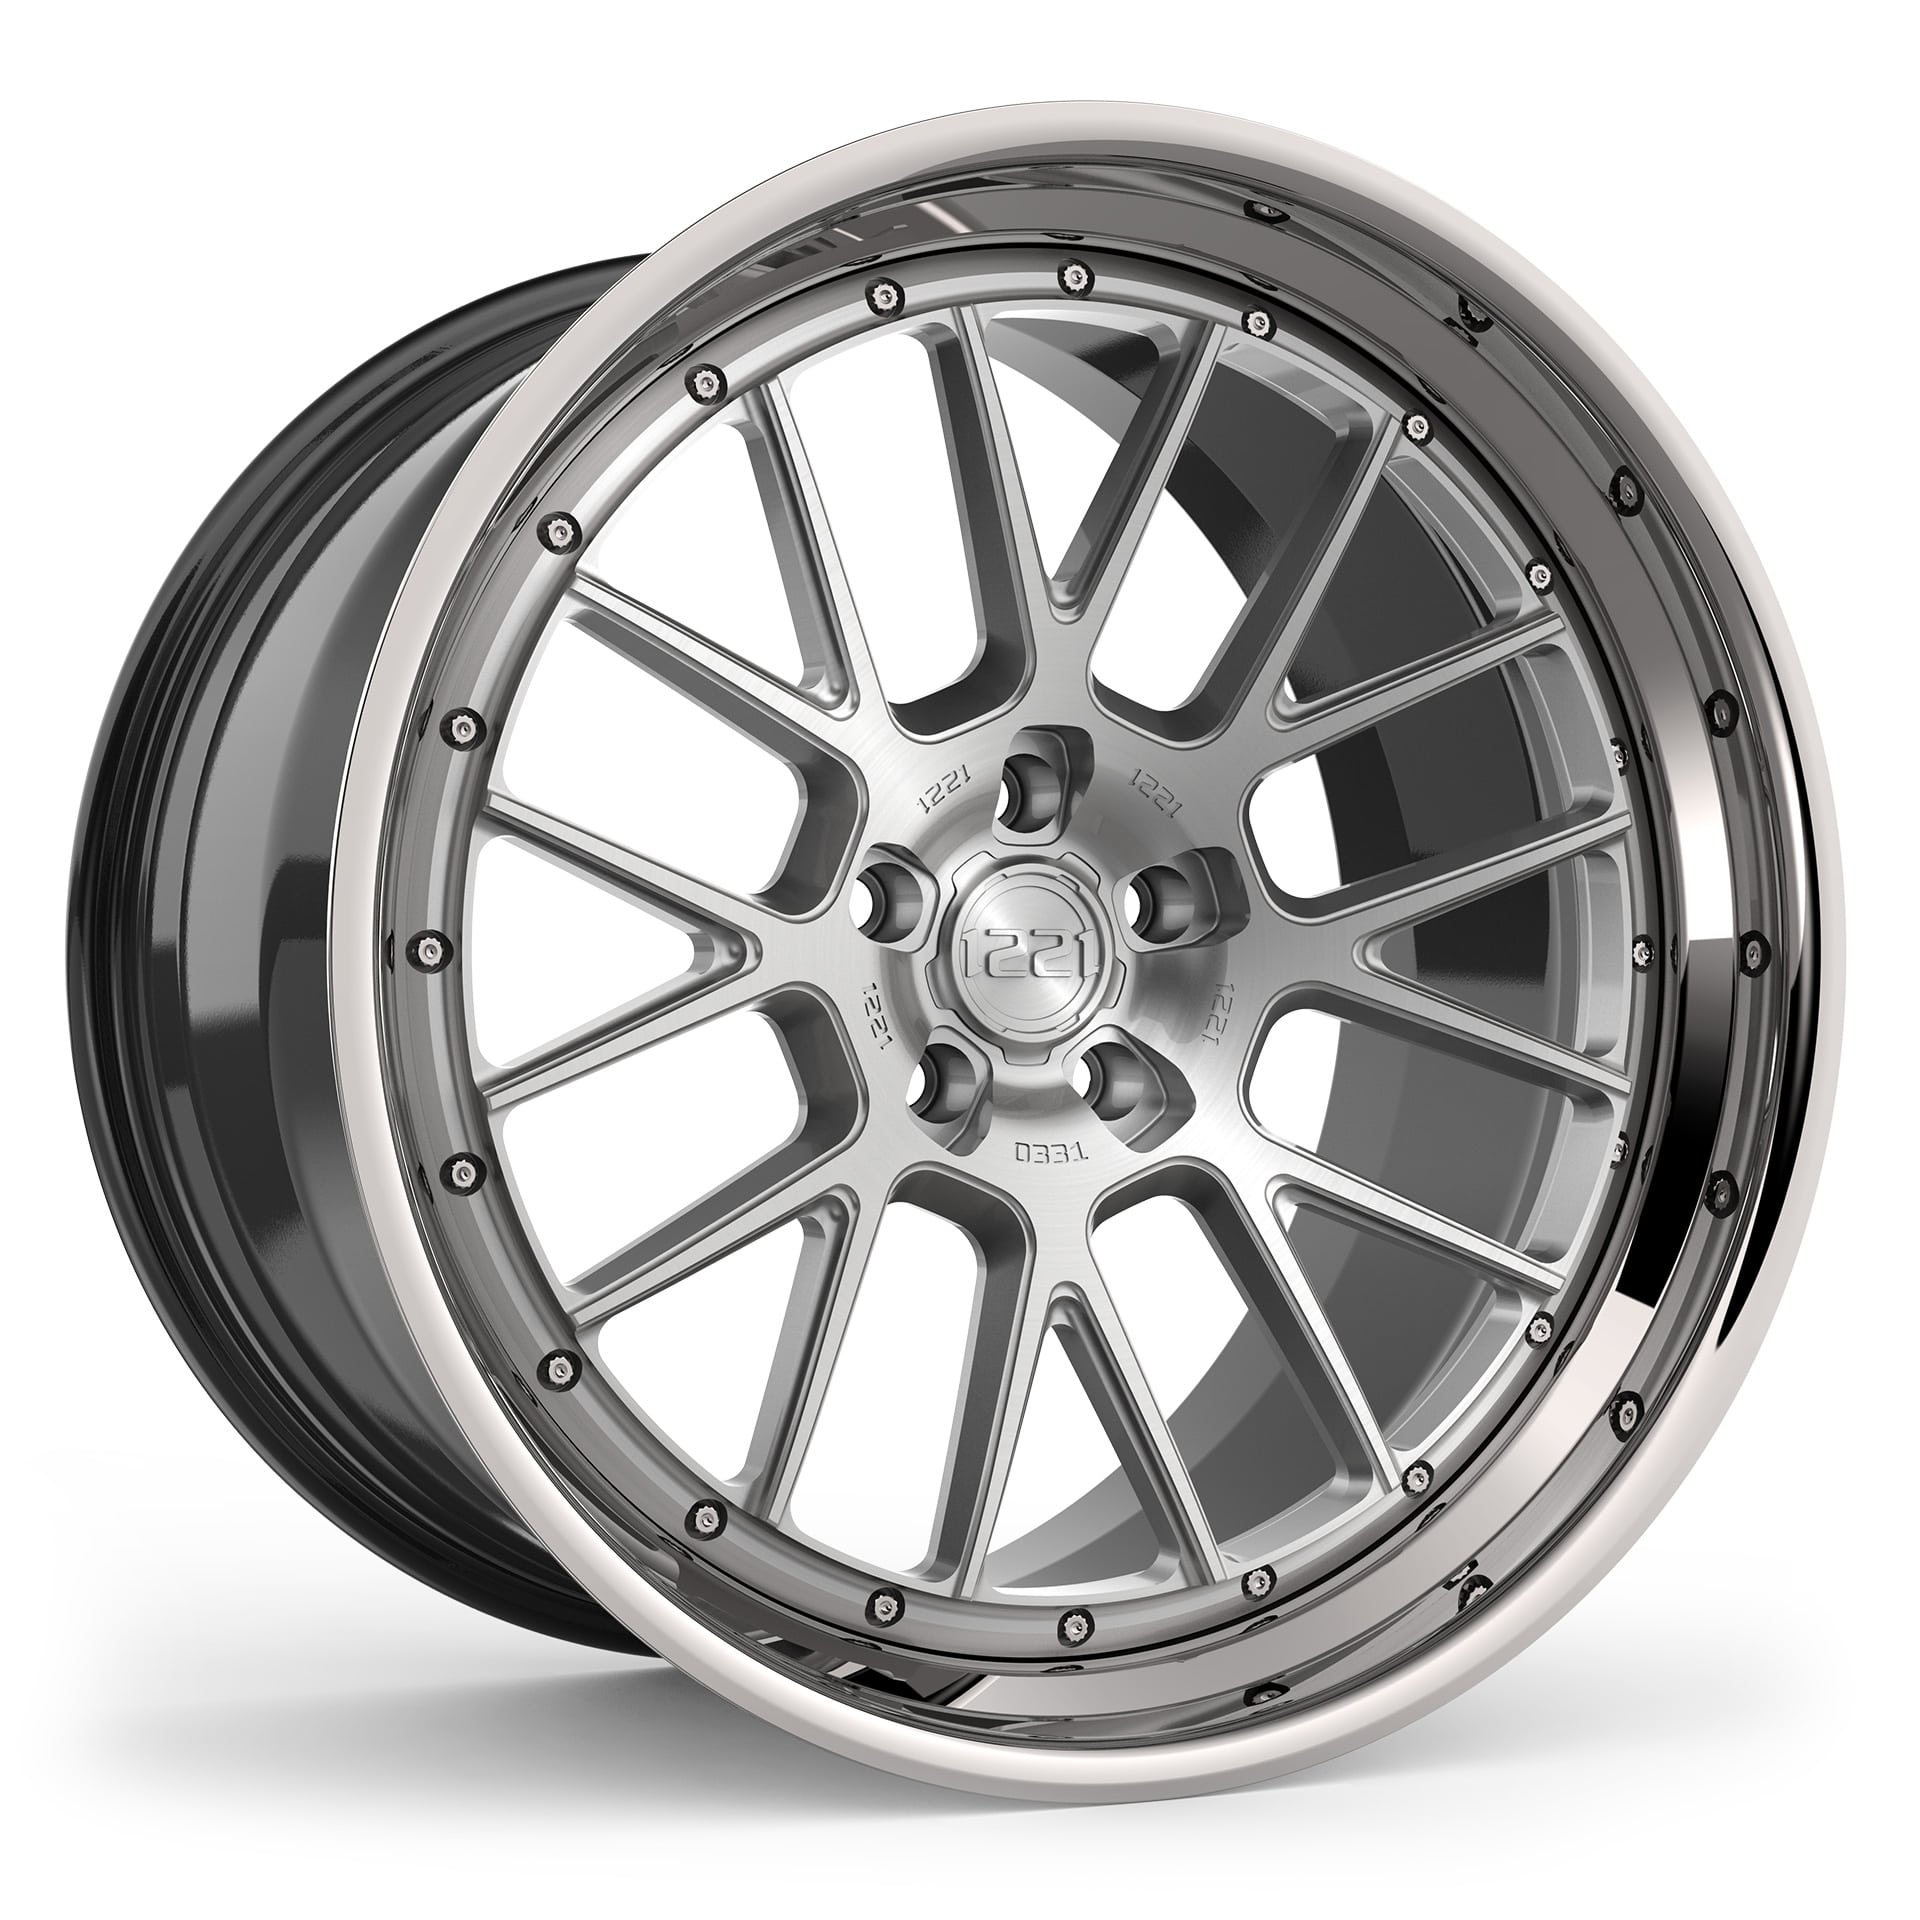 1221 Wheels | Concave Forged Designs | 0331 Apex2 0